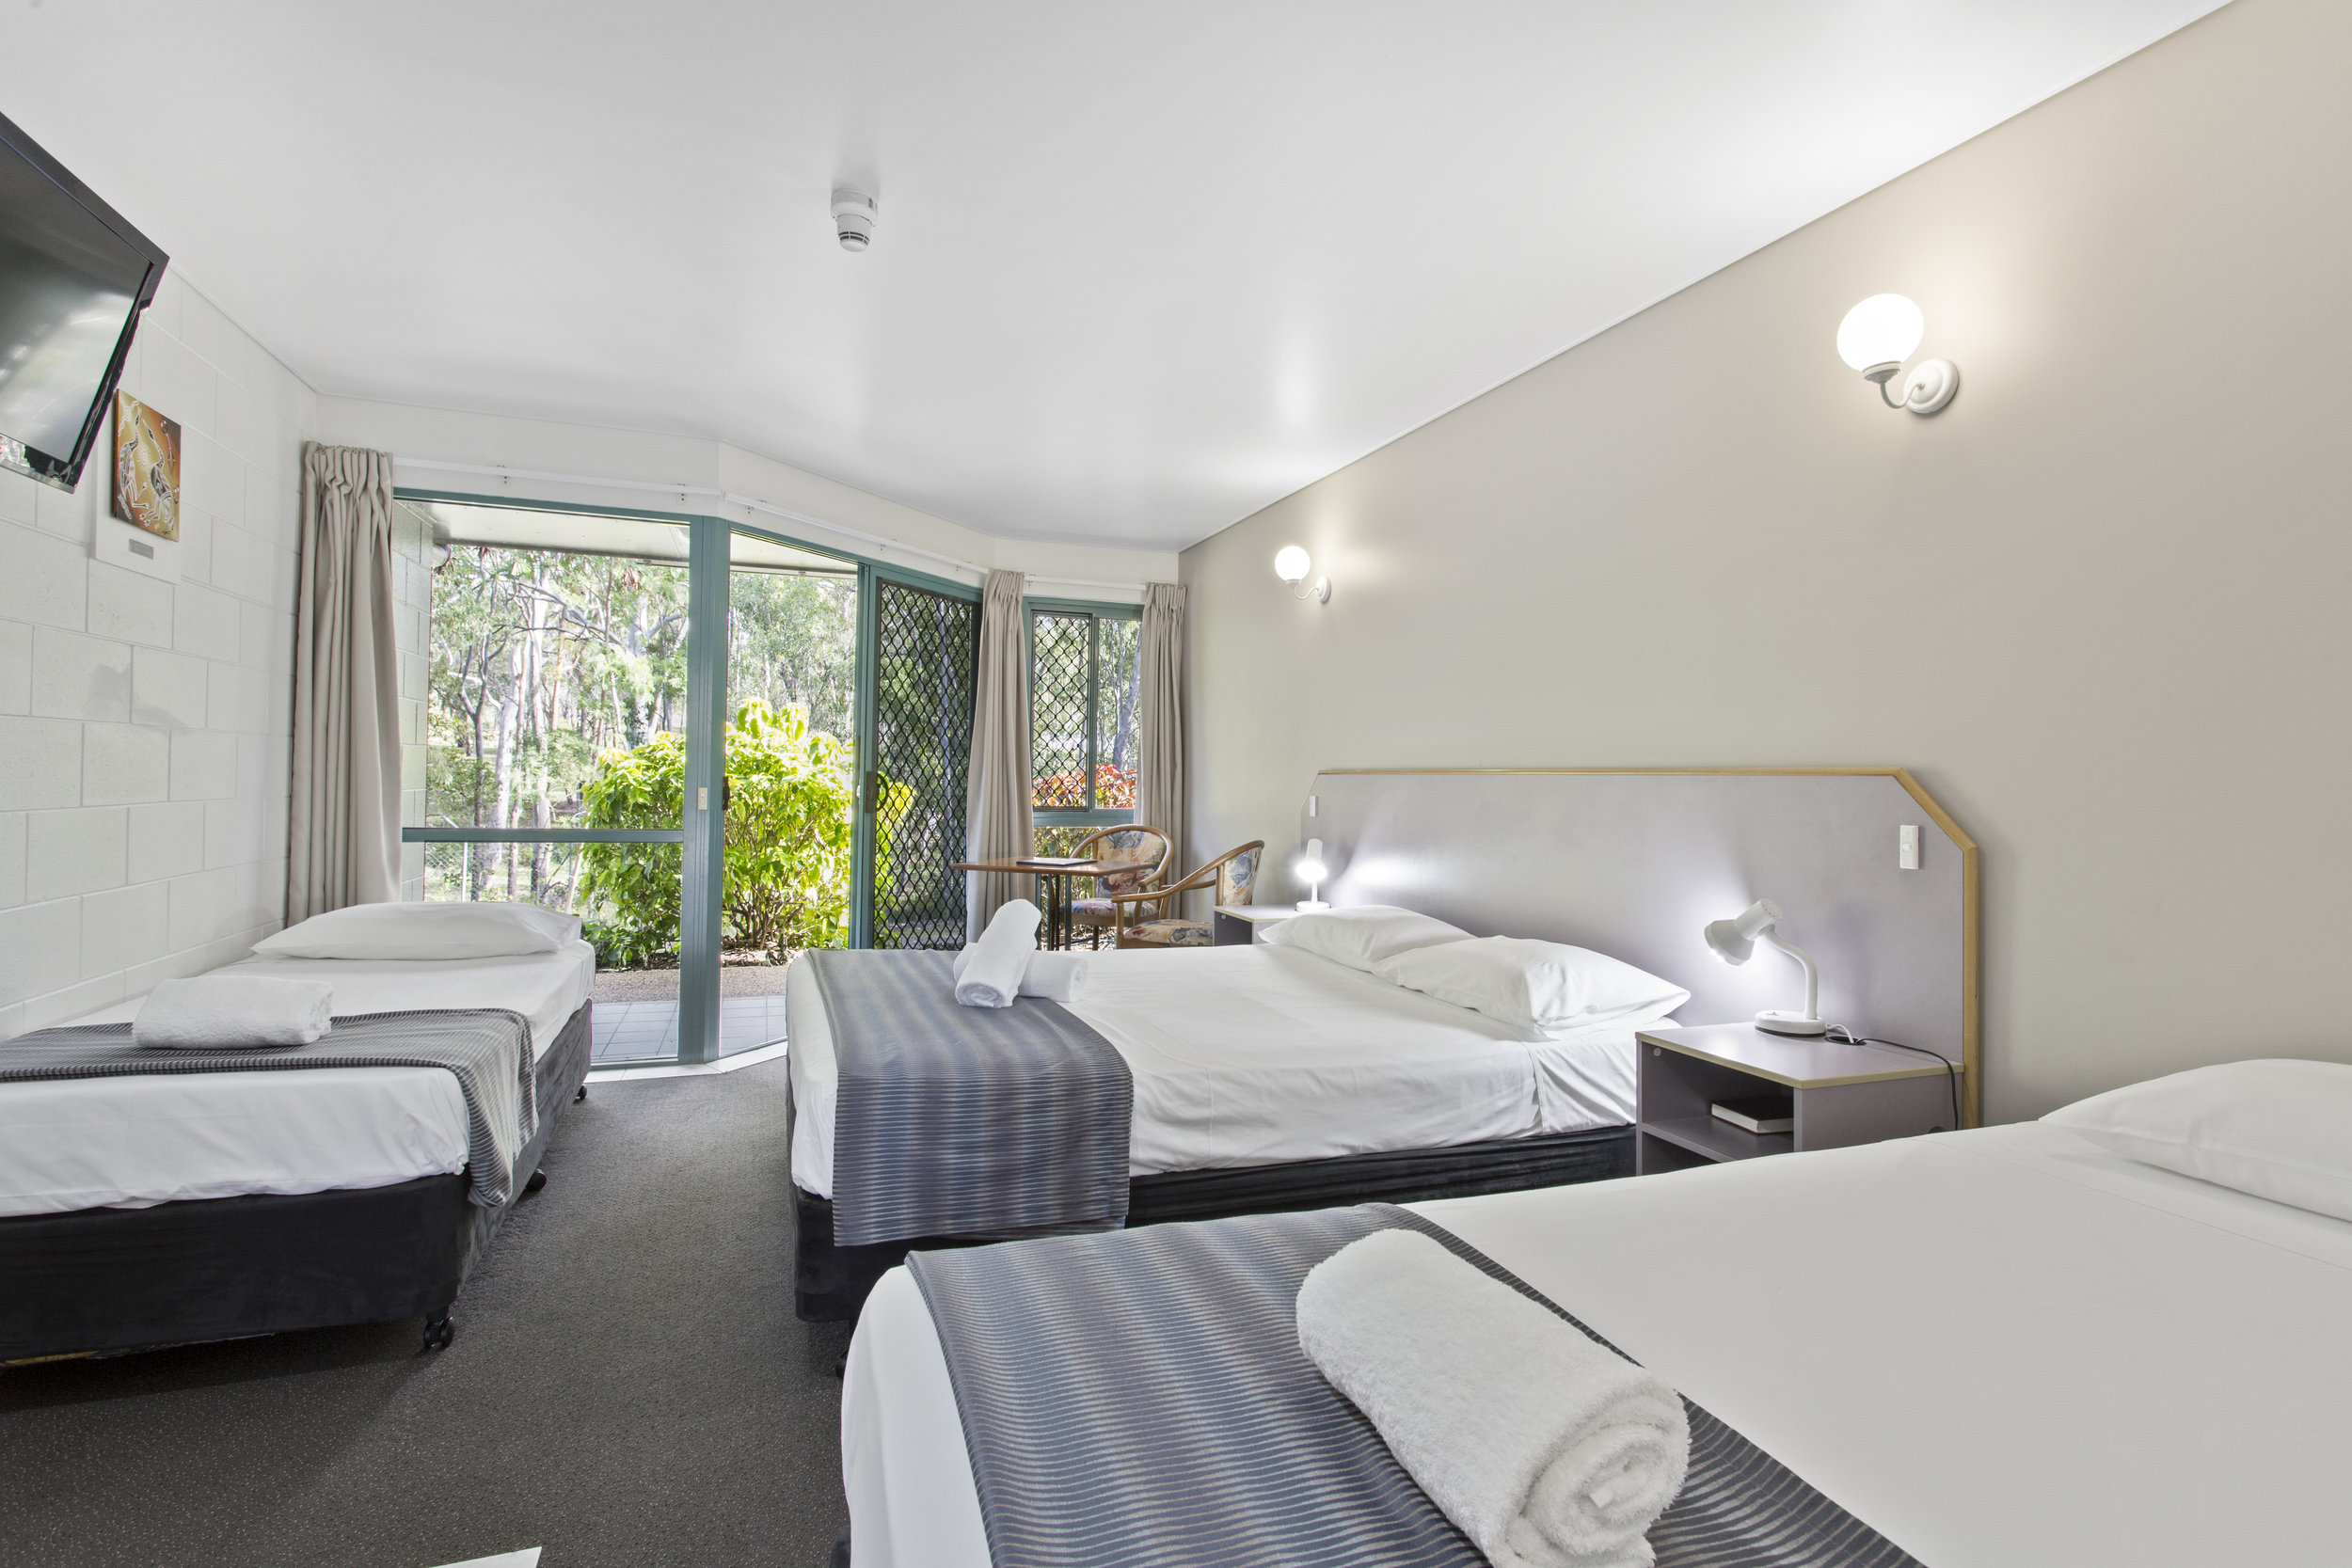 Rooms - Capricorn Motel has air-conditioned rooms for 1 to 6 guests